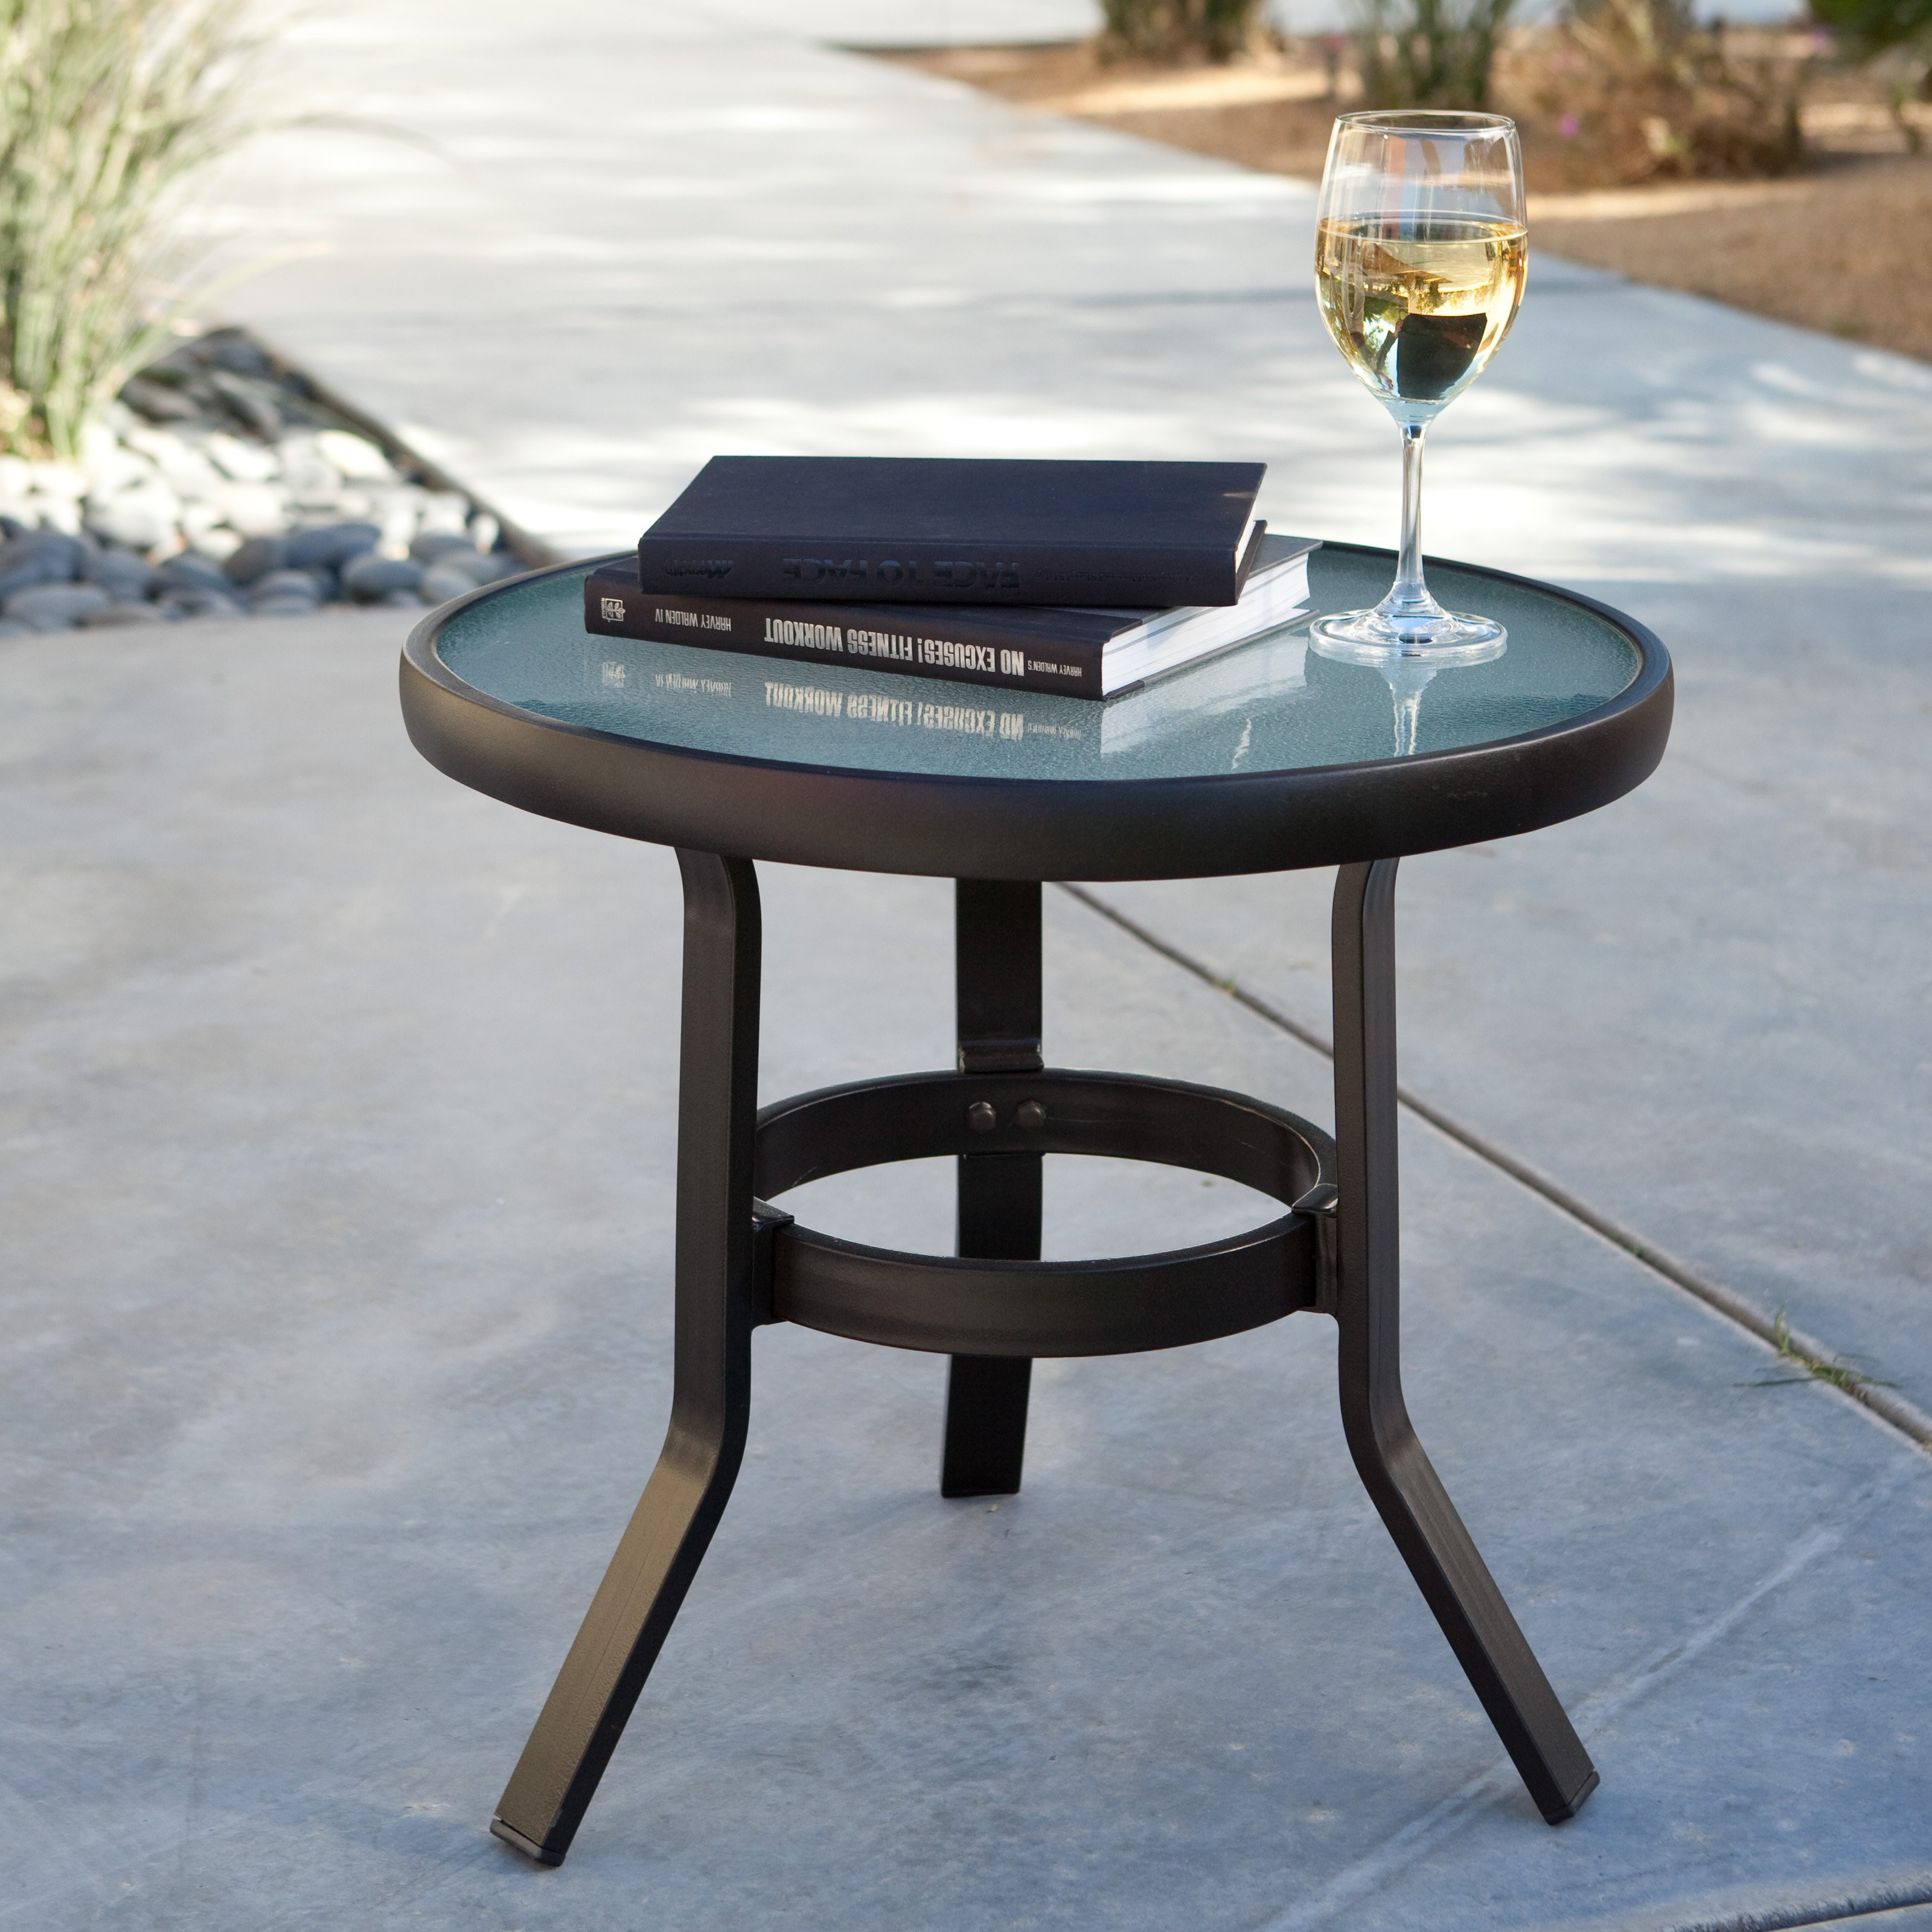 Best ideas about Small Patio Tables . Save or Pin Coral Coast 20 in Patio Side Table Patio Accent Tables Now.